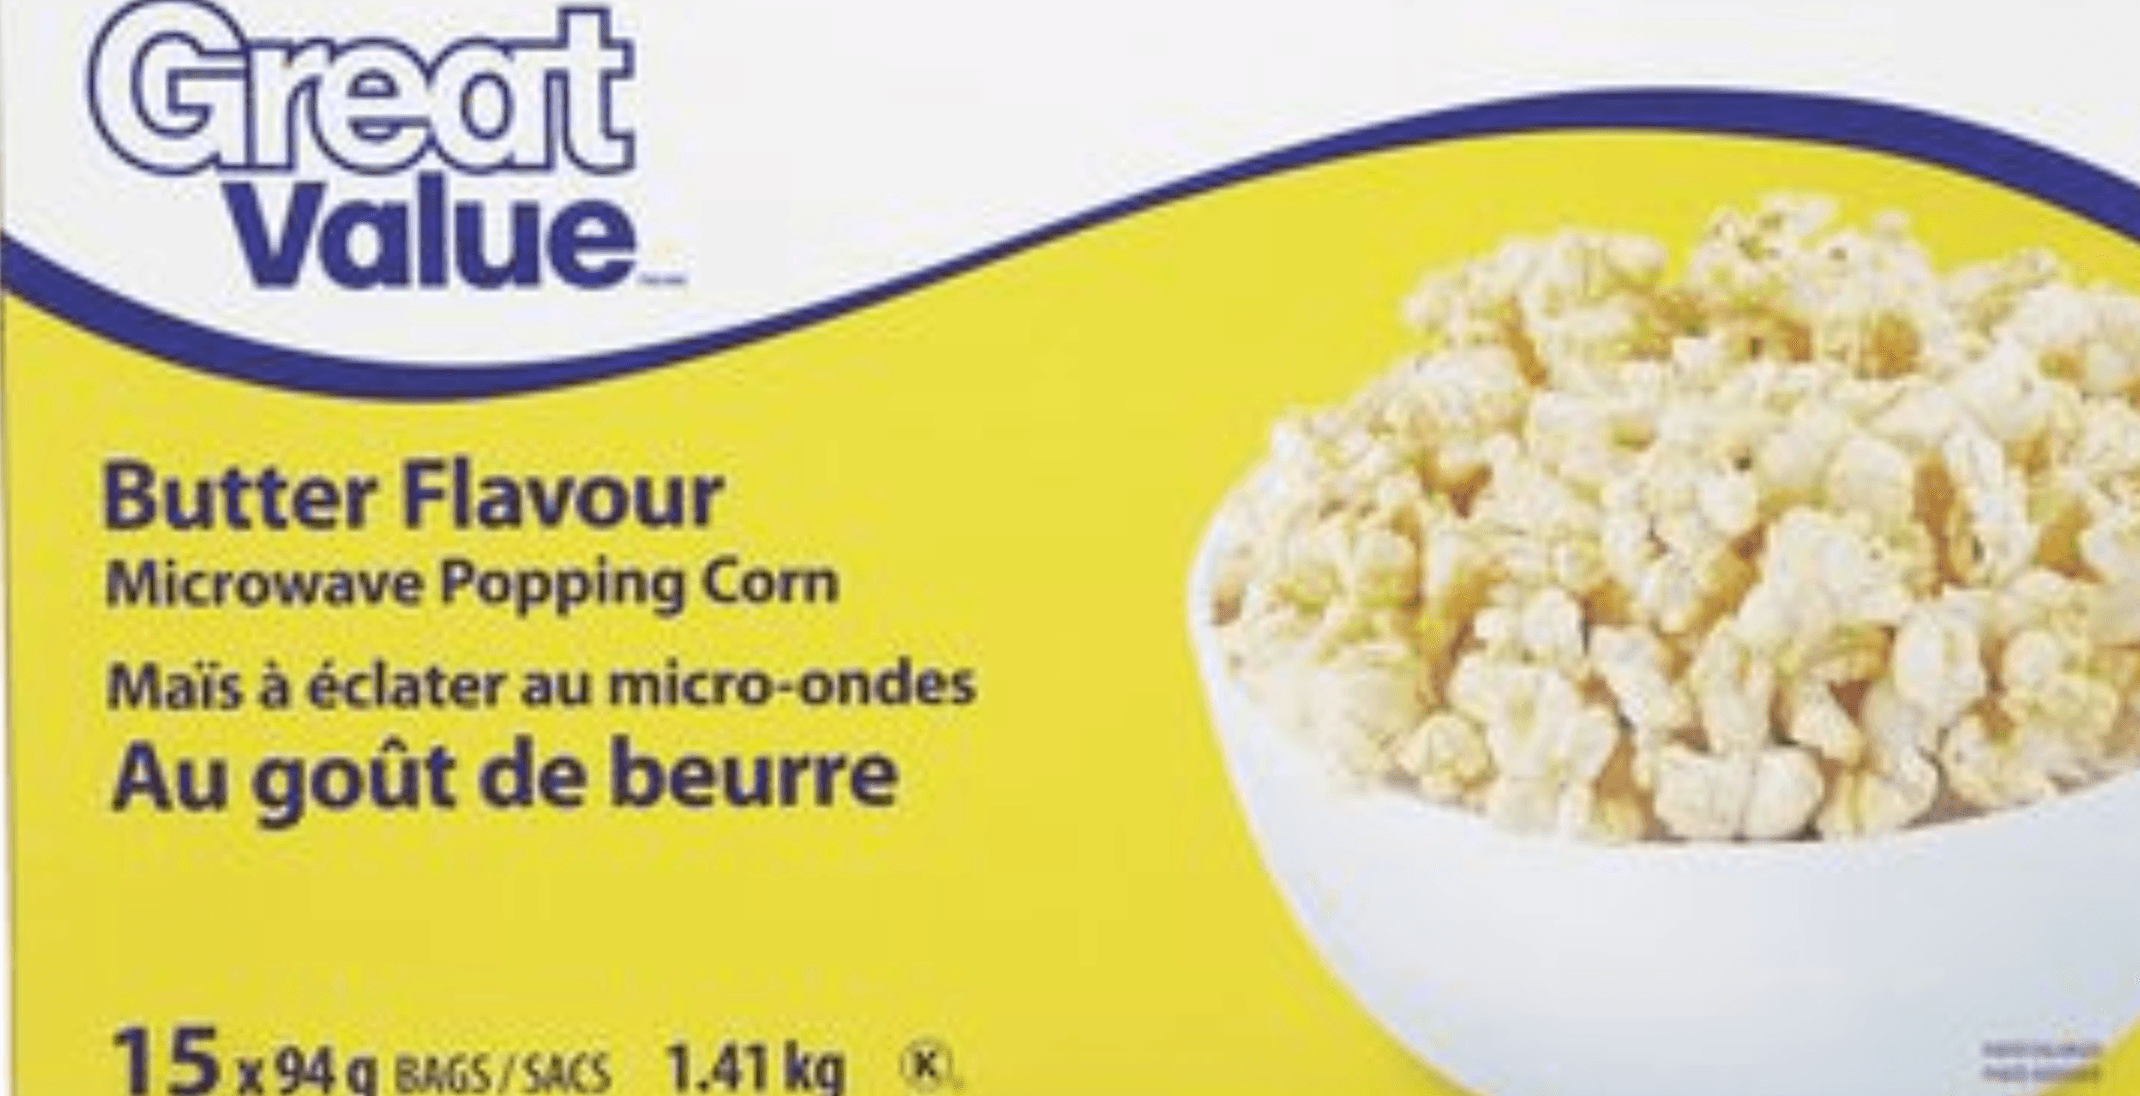 Great Value popcorn recalled across Canada due to presence of insects